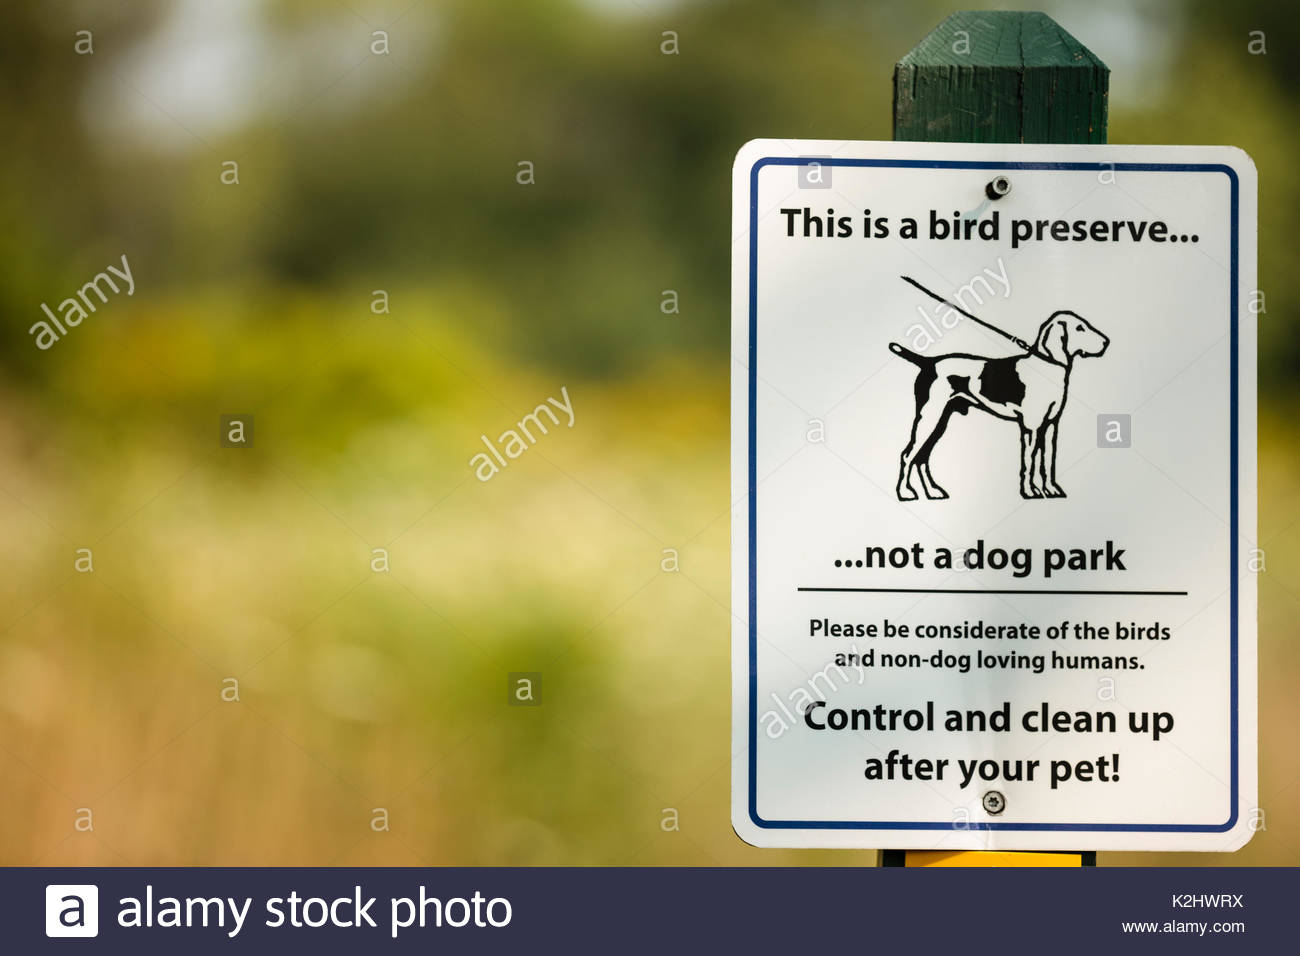 Bird preserve sign alerting visitors that it isn't a dog park at Forest Beach Migratory Nature Preserve near Port Washington, Wisconsin - Stock Image